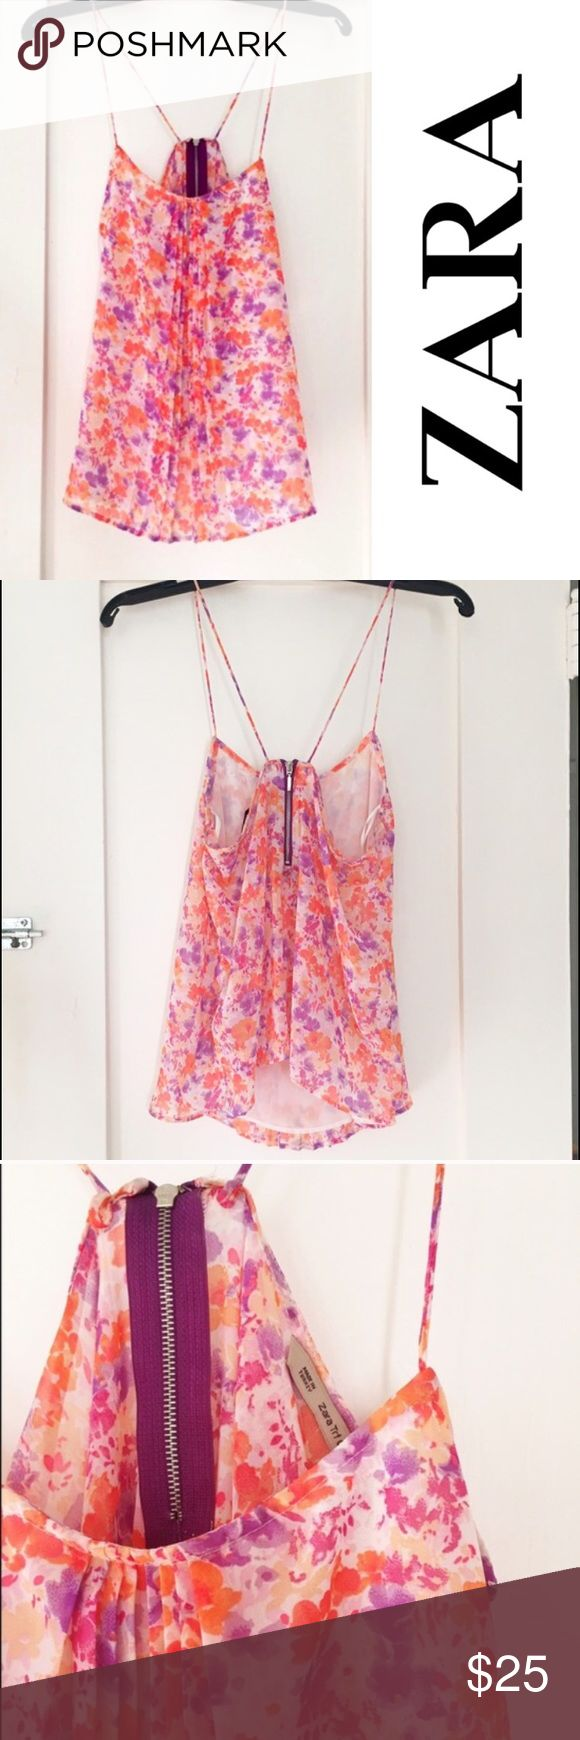 """Zara floral strappy tank top Pretty and flowy tank from Zara. Lined. Small back zip. Lightweight. Poly. Pleats on bodice. Armpit to armpit flat is about 17"""". Length from shoulder is about 26"""". No condition issues. Zara Tops Camisoles"""